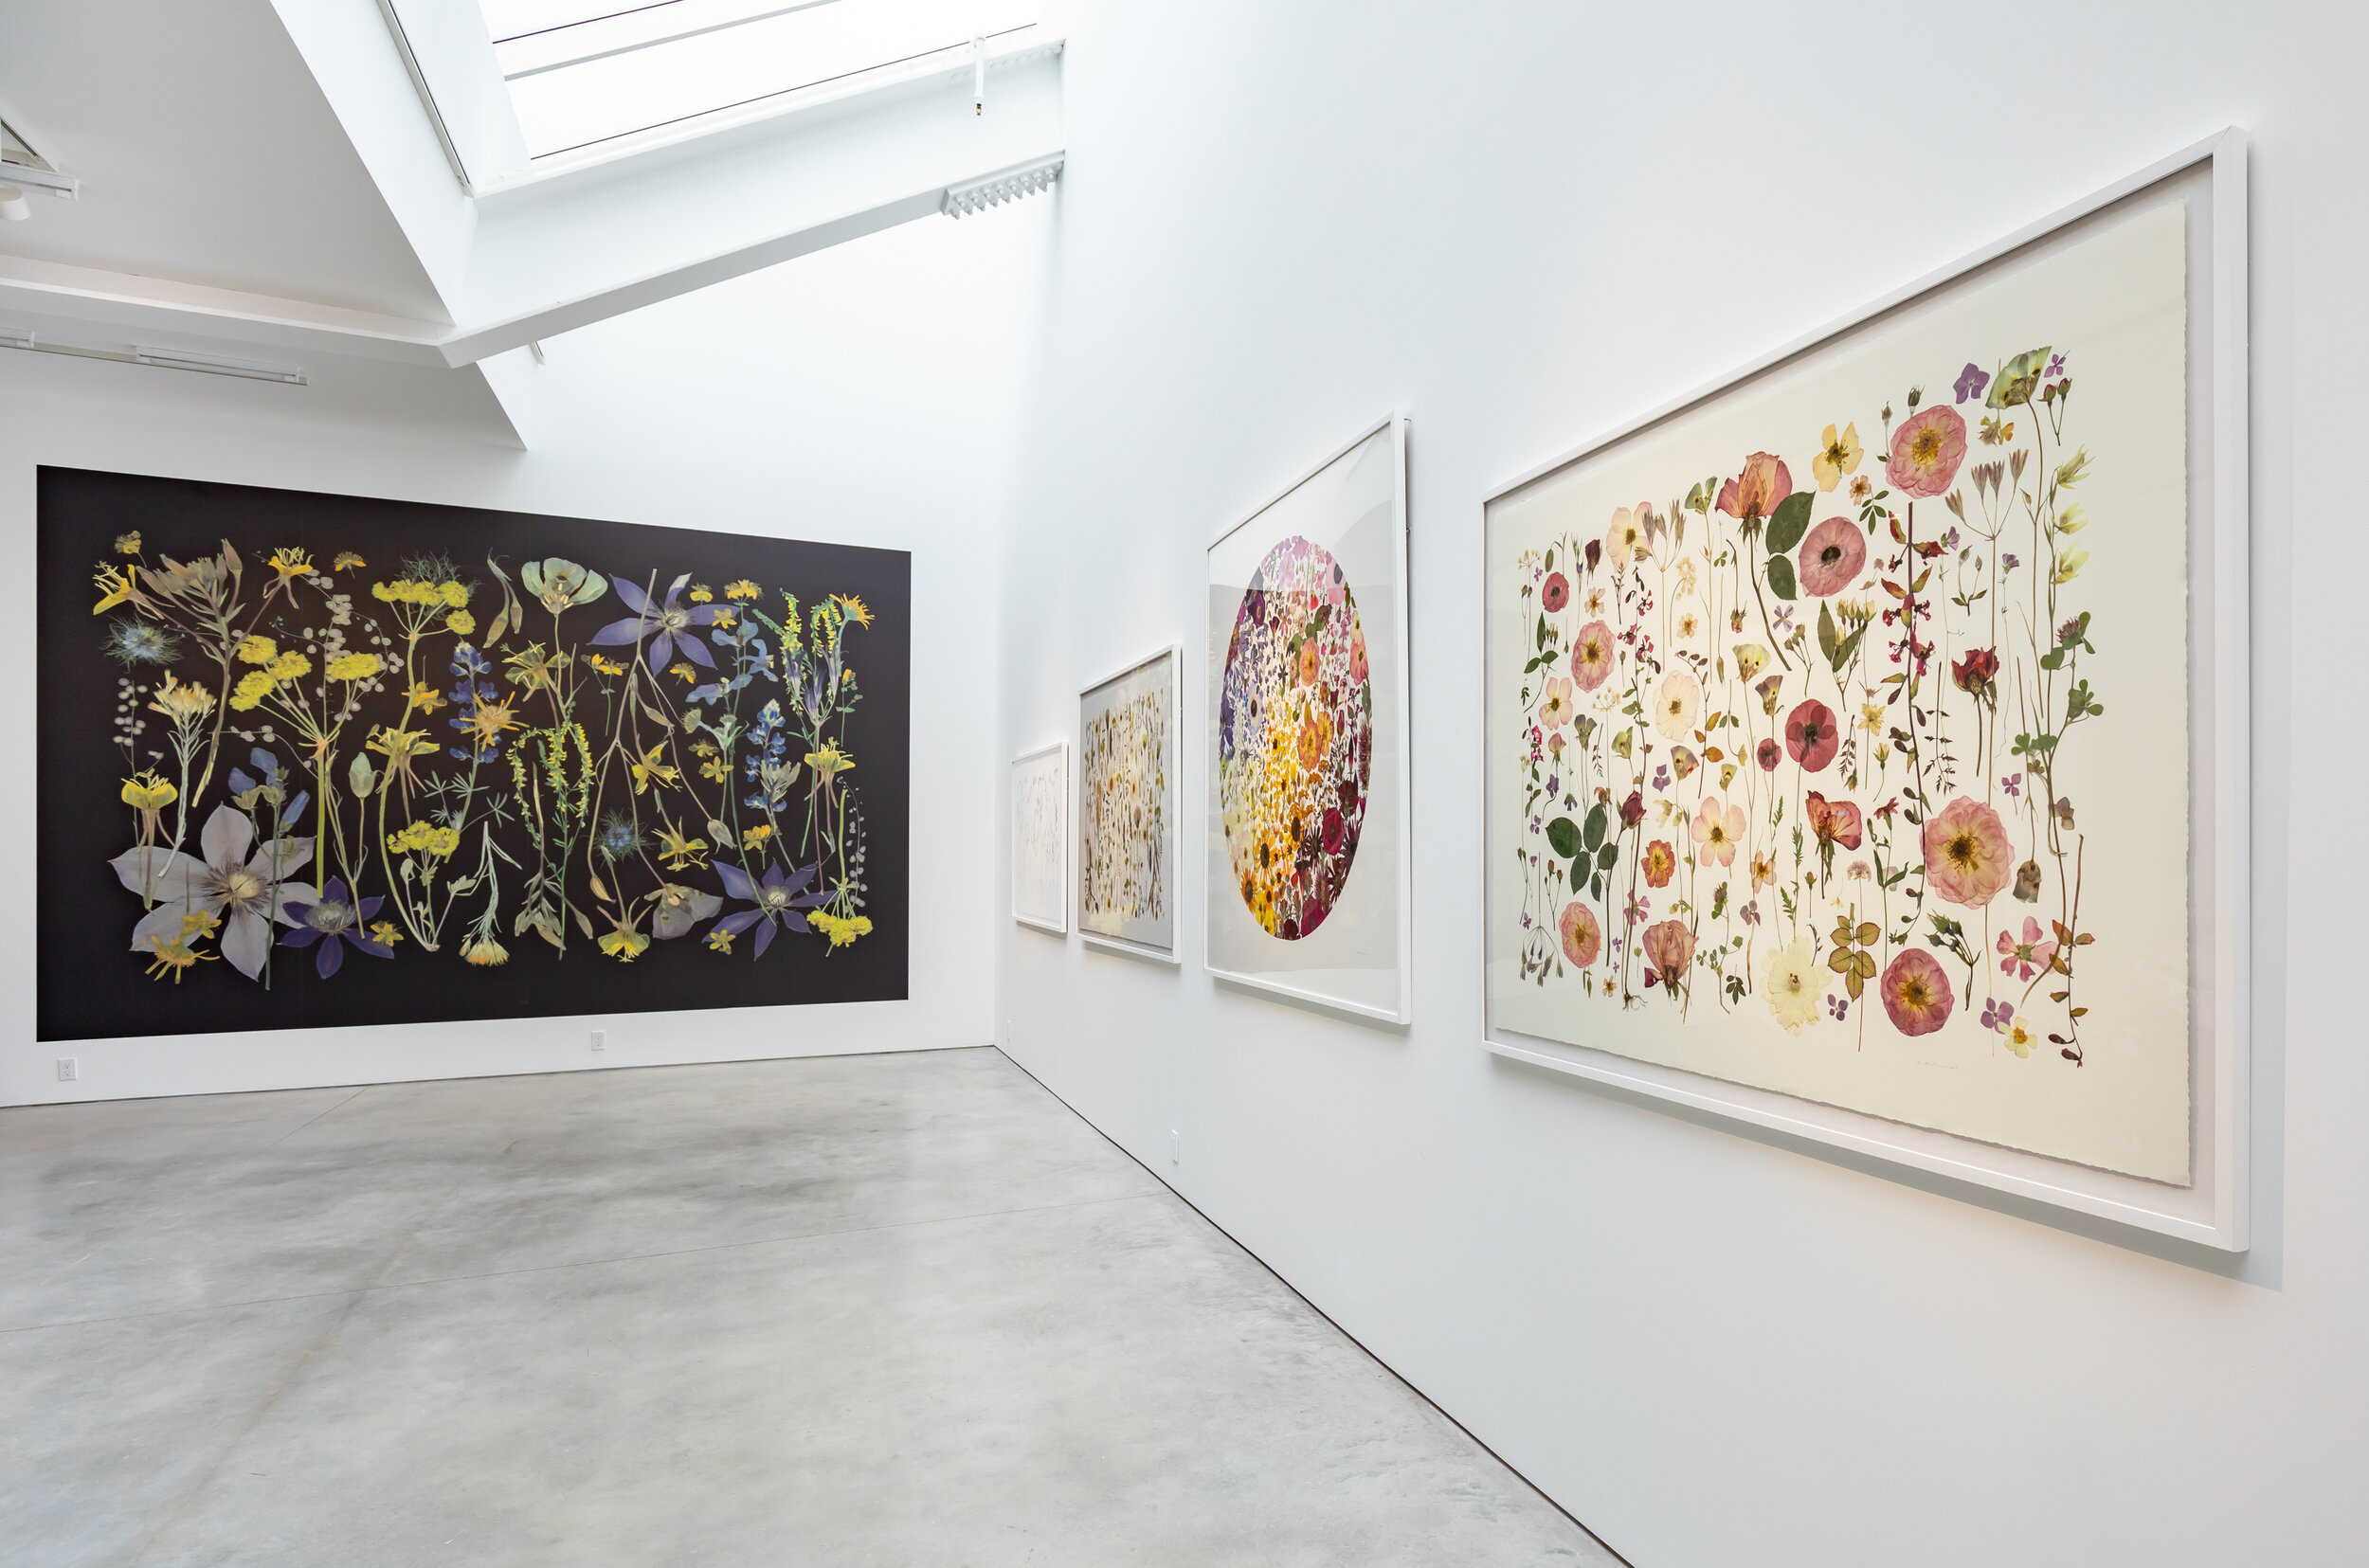 Installation shot of large botanical floral prints in a gallery